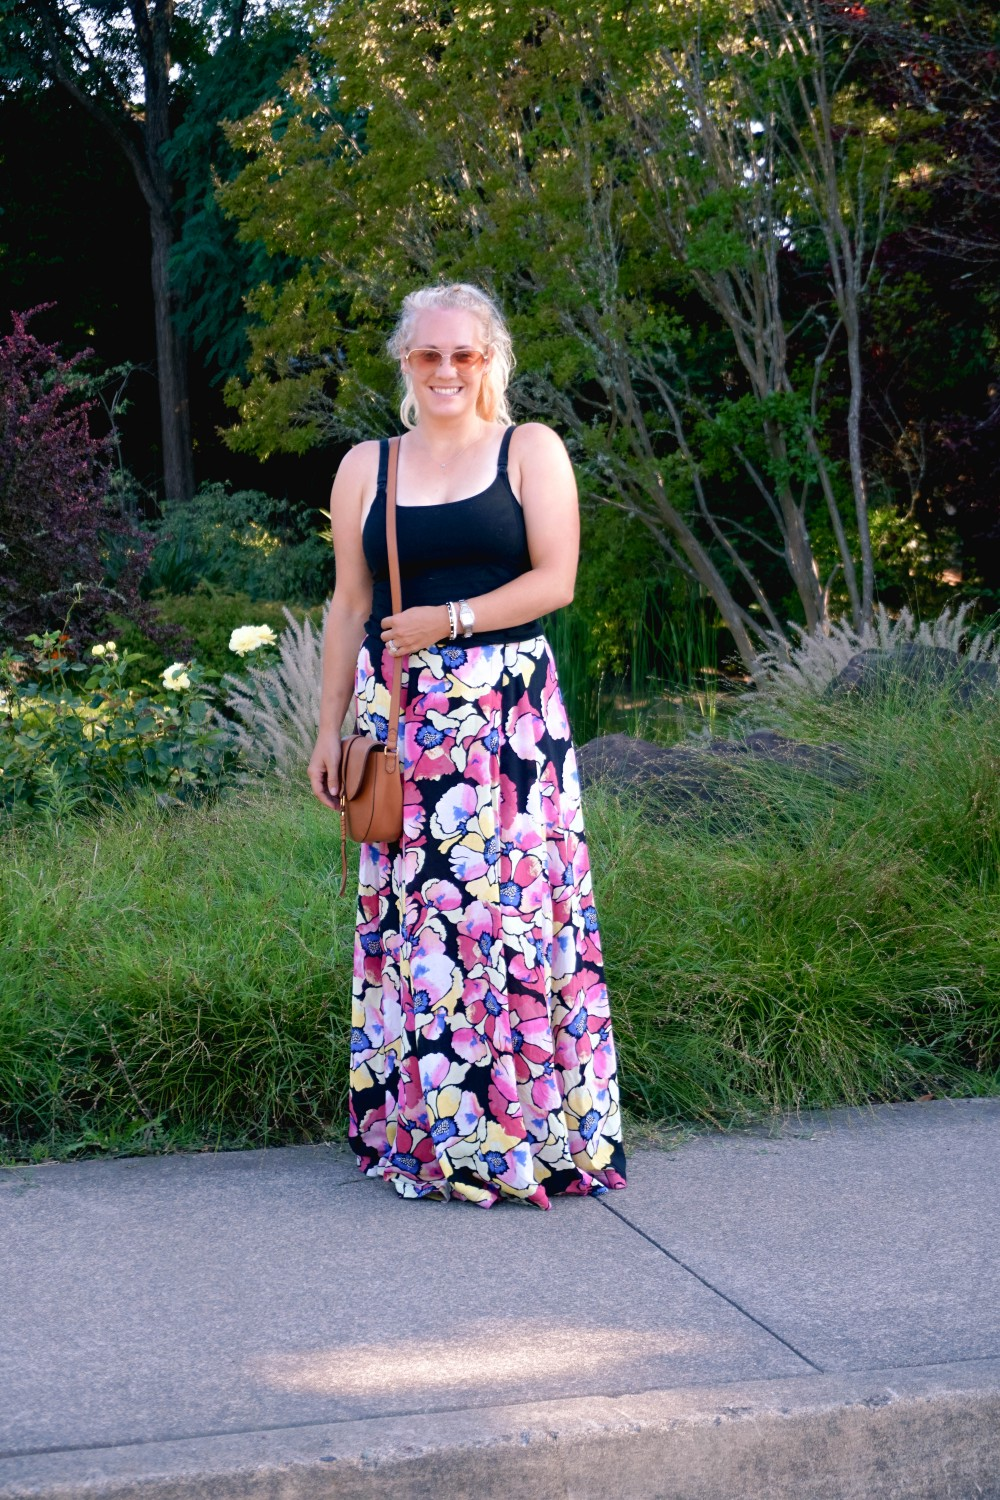 Hot Tropics Floral Maxi Skirt-Free People Floral Maxi Skirt-Outfit Inspiration-Wine Country-Mom Style-Nursing Top-Have Need Want 4